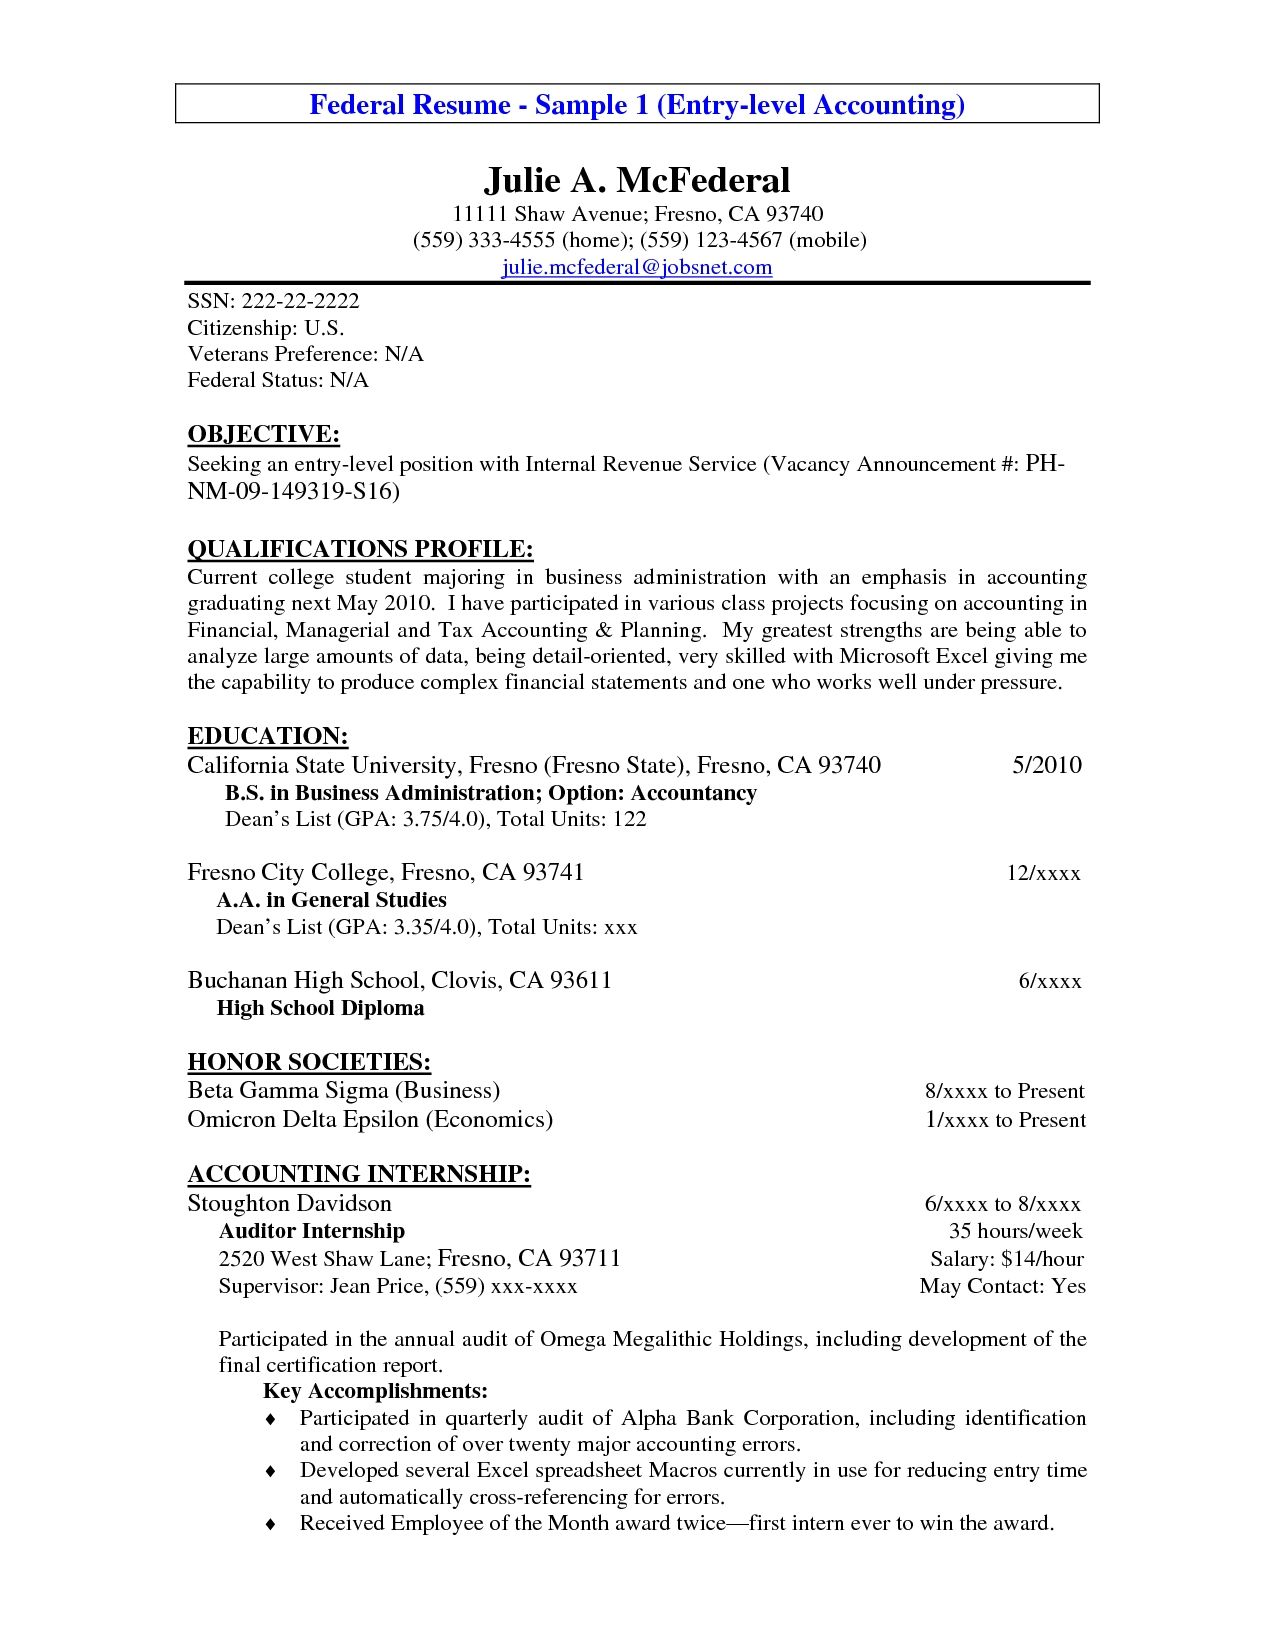 free cover letter and resume builder how make good entry level example accounting sample gallery photos - Resume Sample For Entry Level